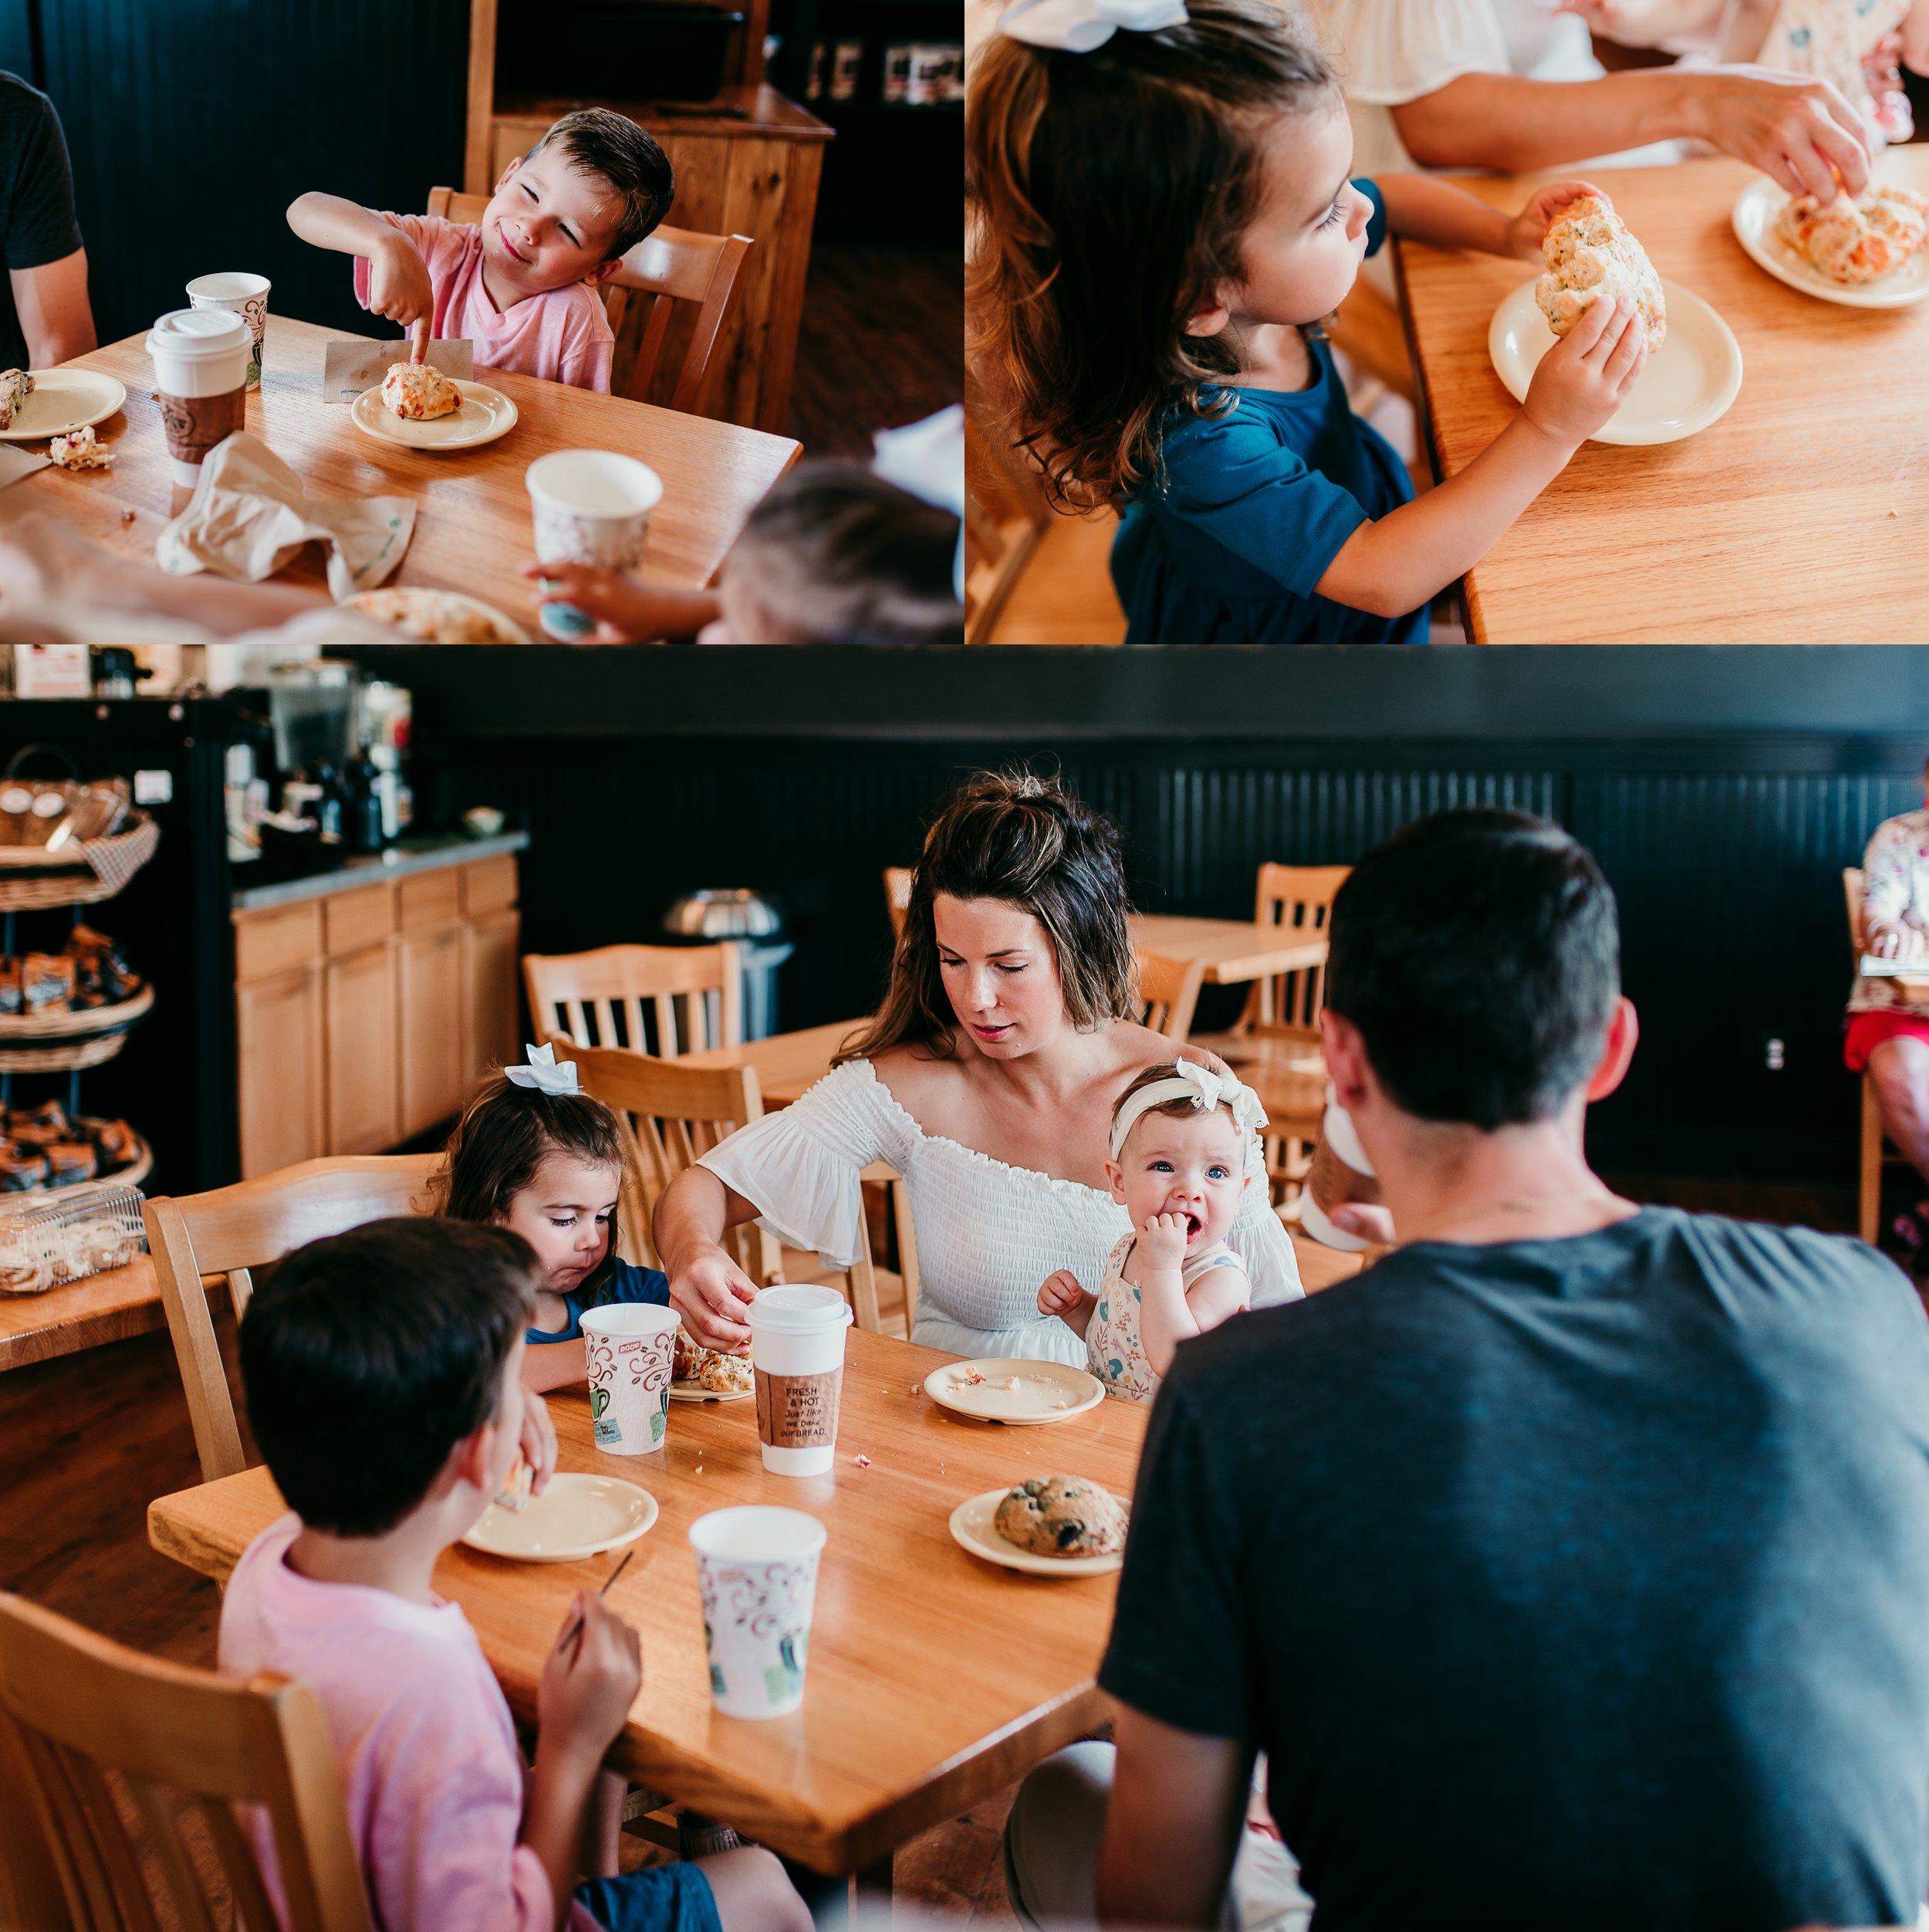 family having breakfast at a bakery together